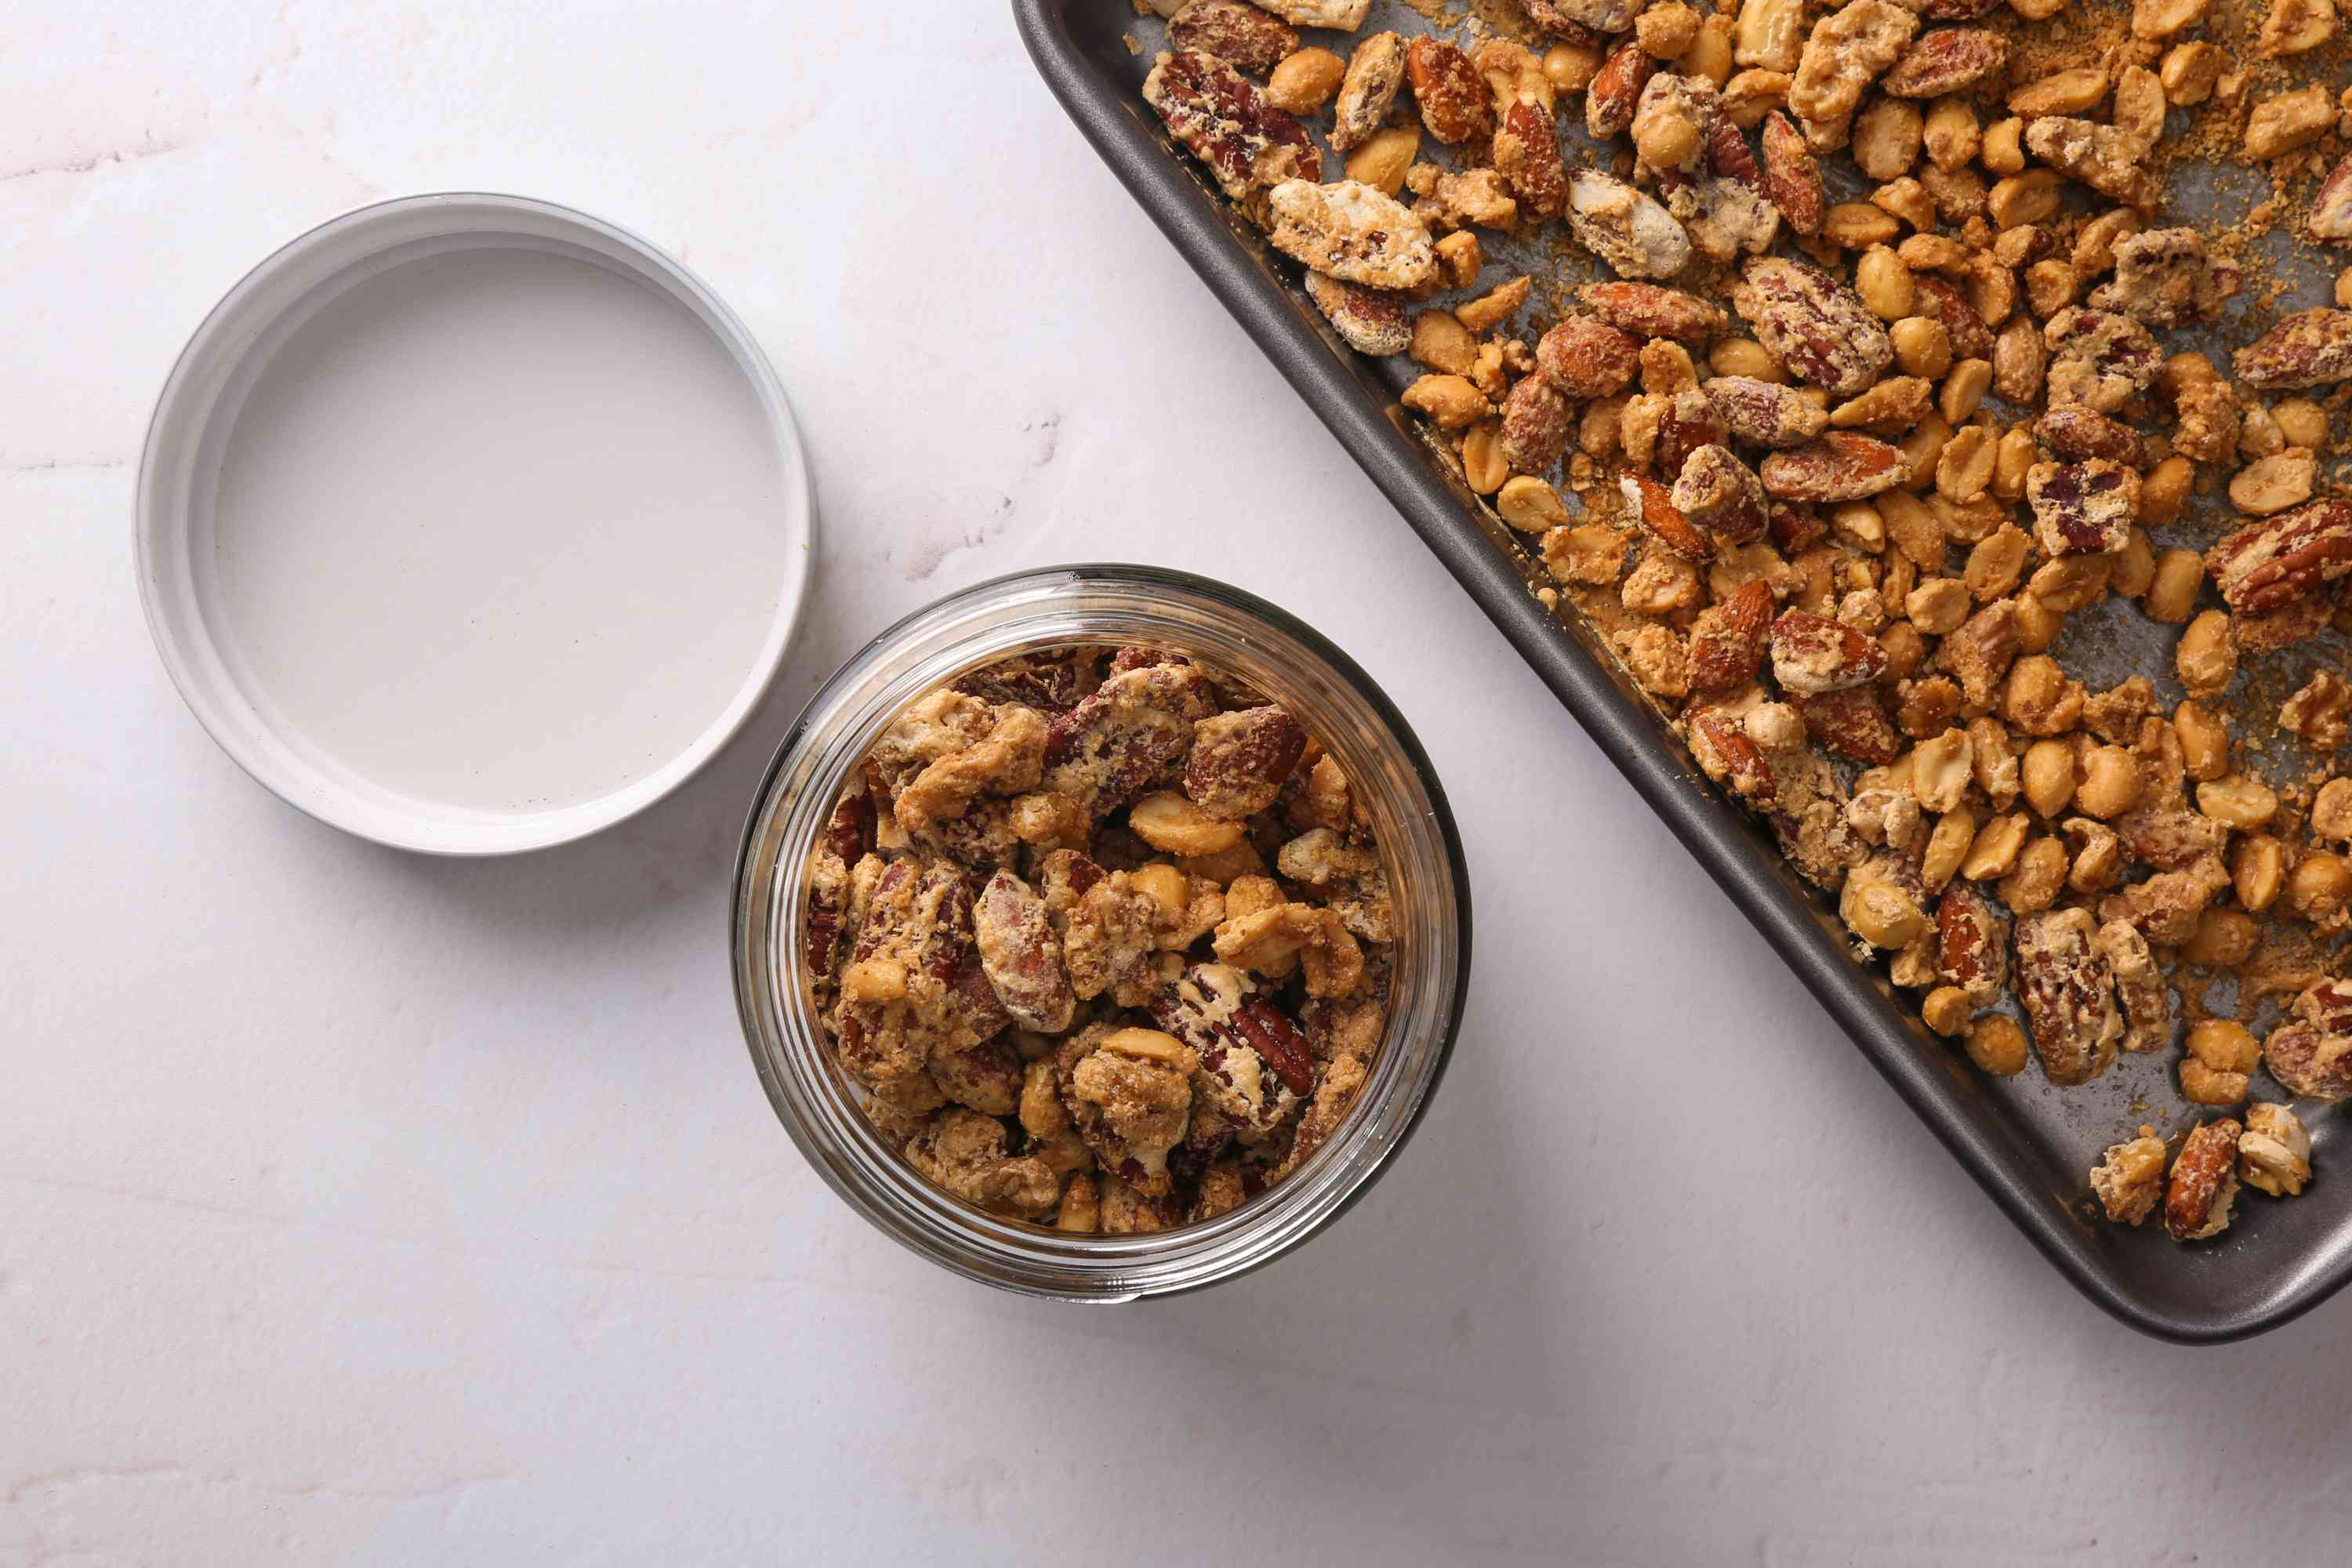 nuts in a jar, nuts on a baking sheet